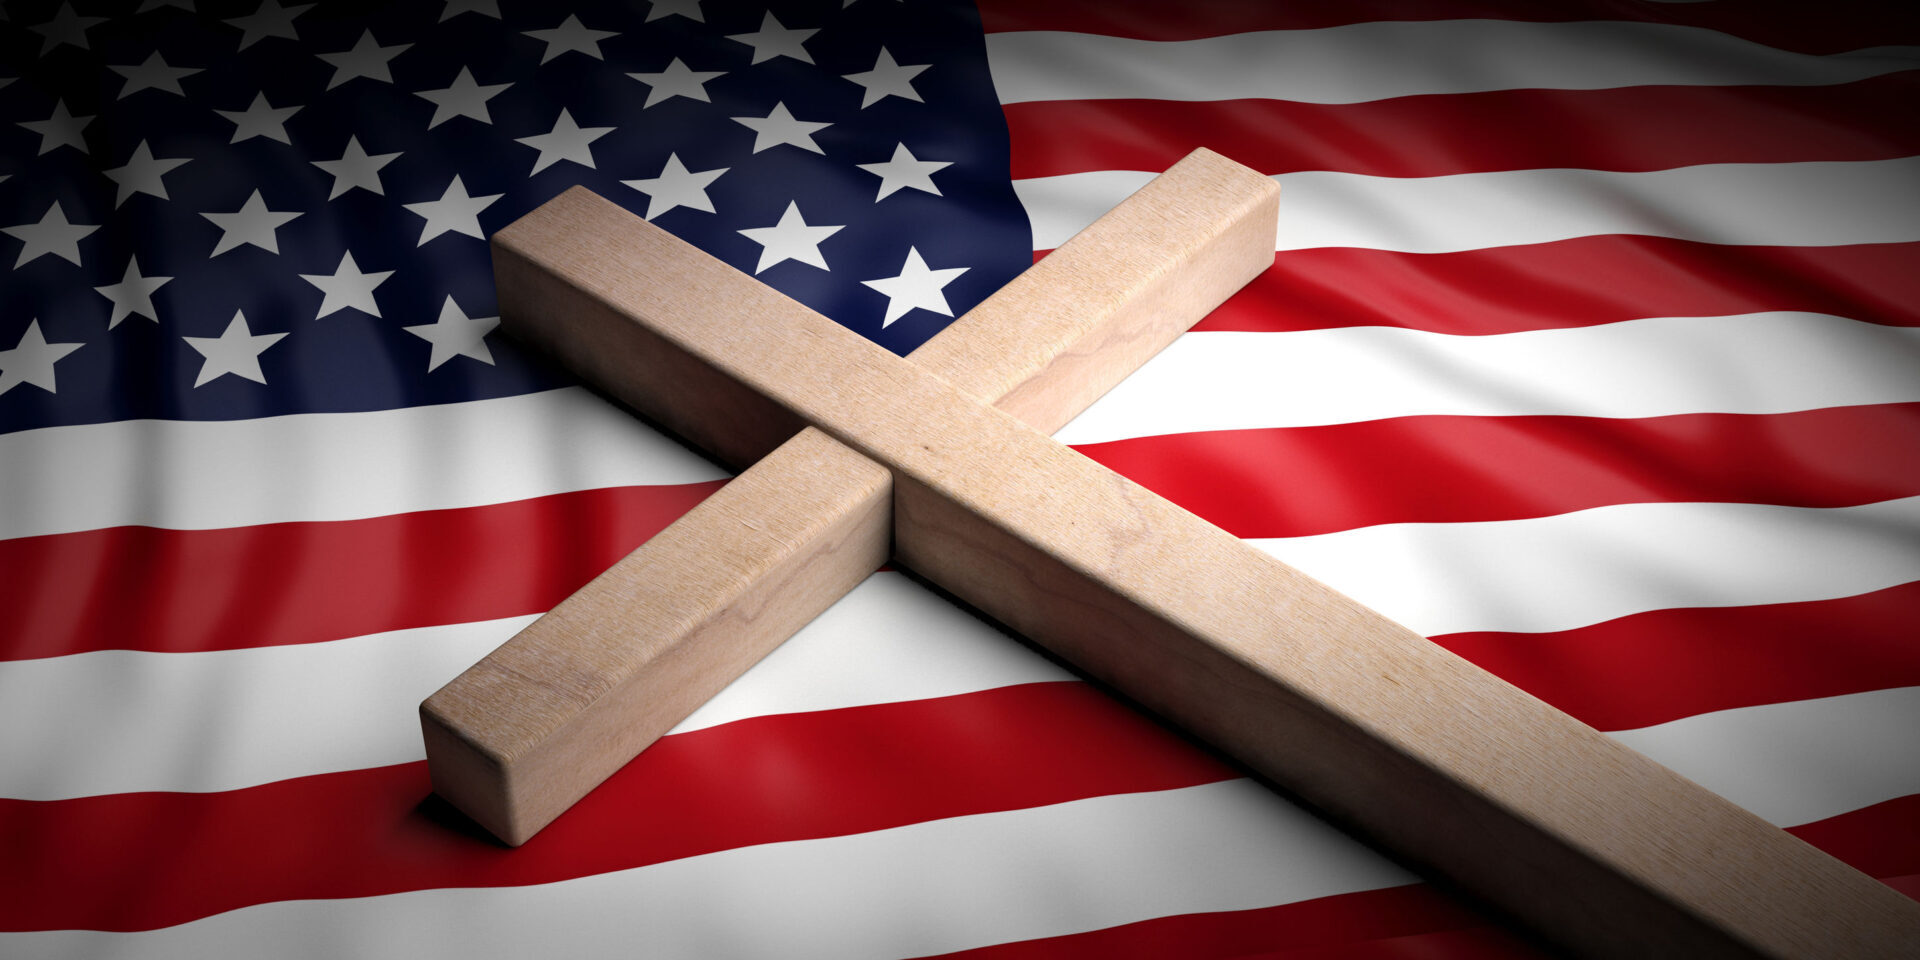 USA and christianity. Christian cross on American flag background. 3d illustration